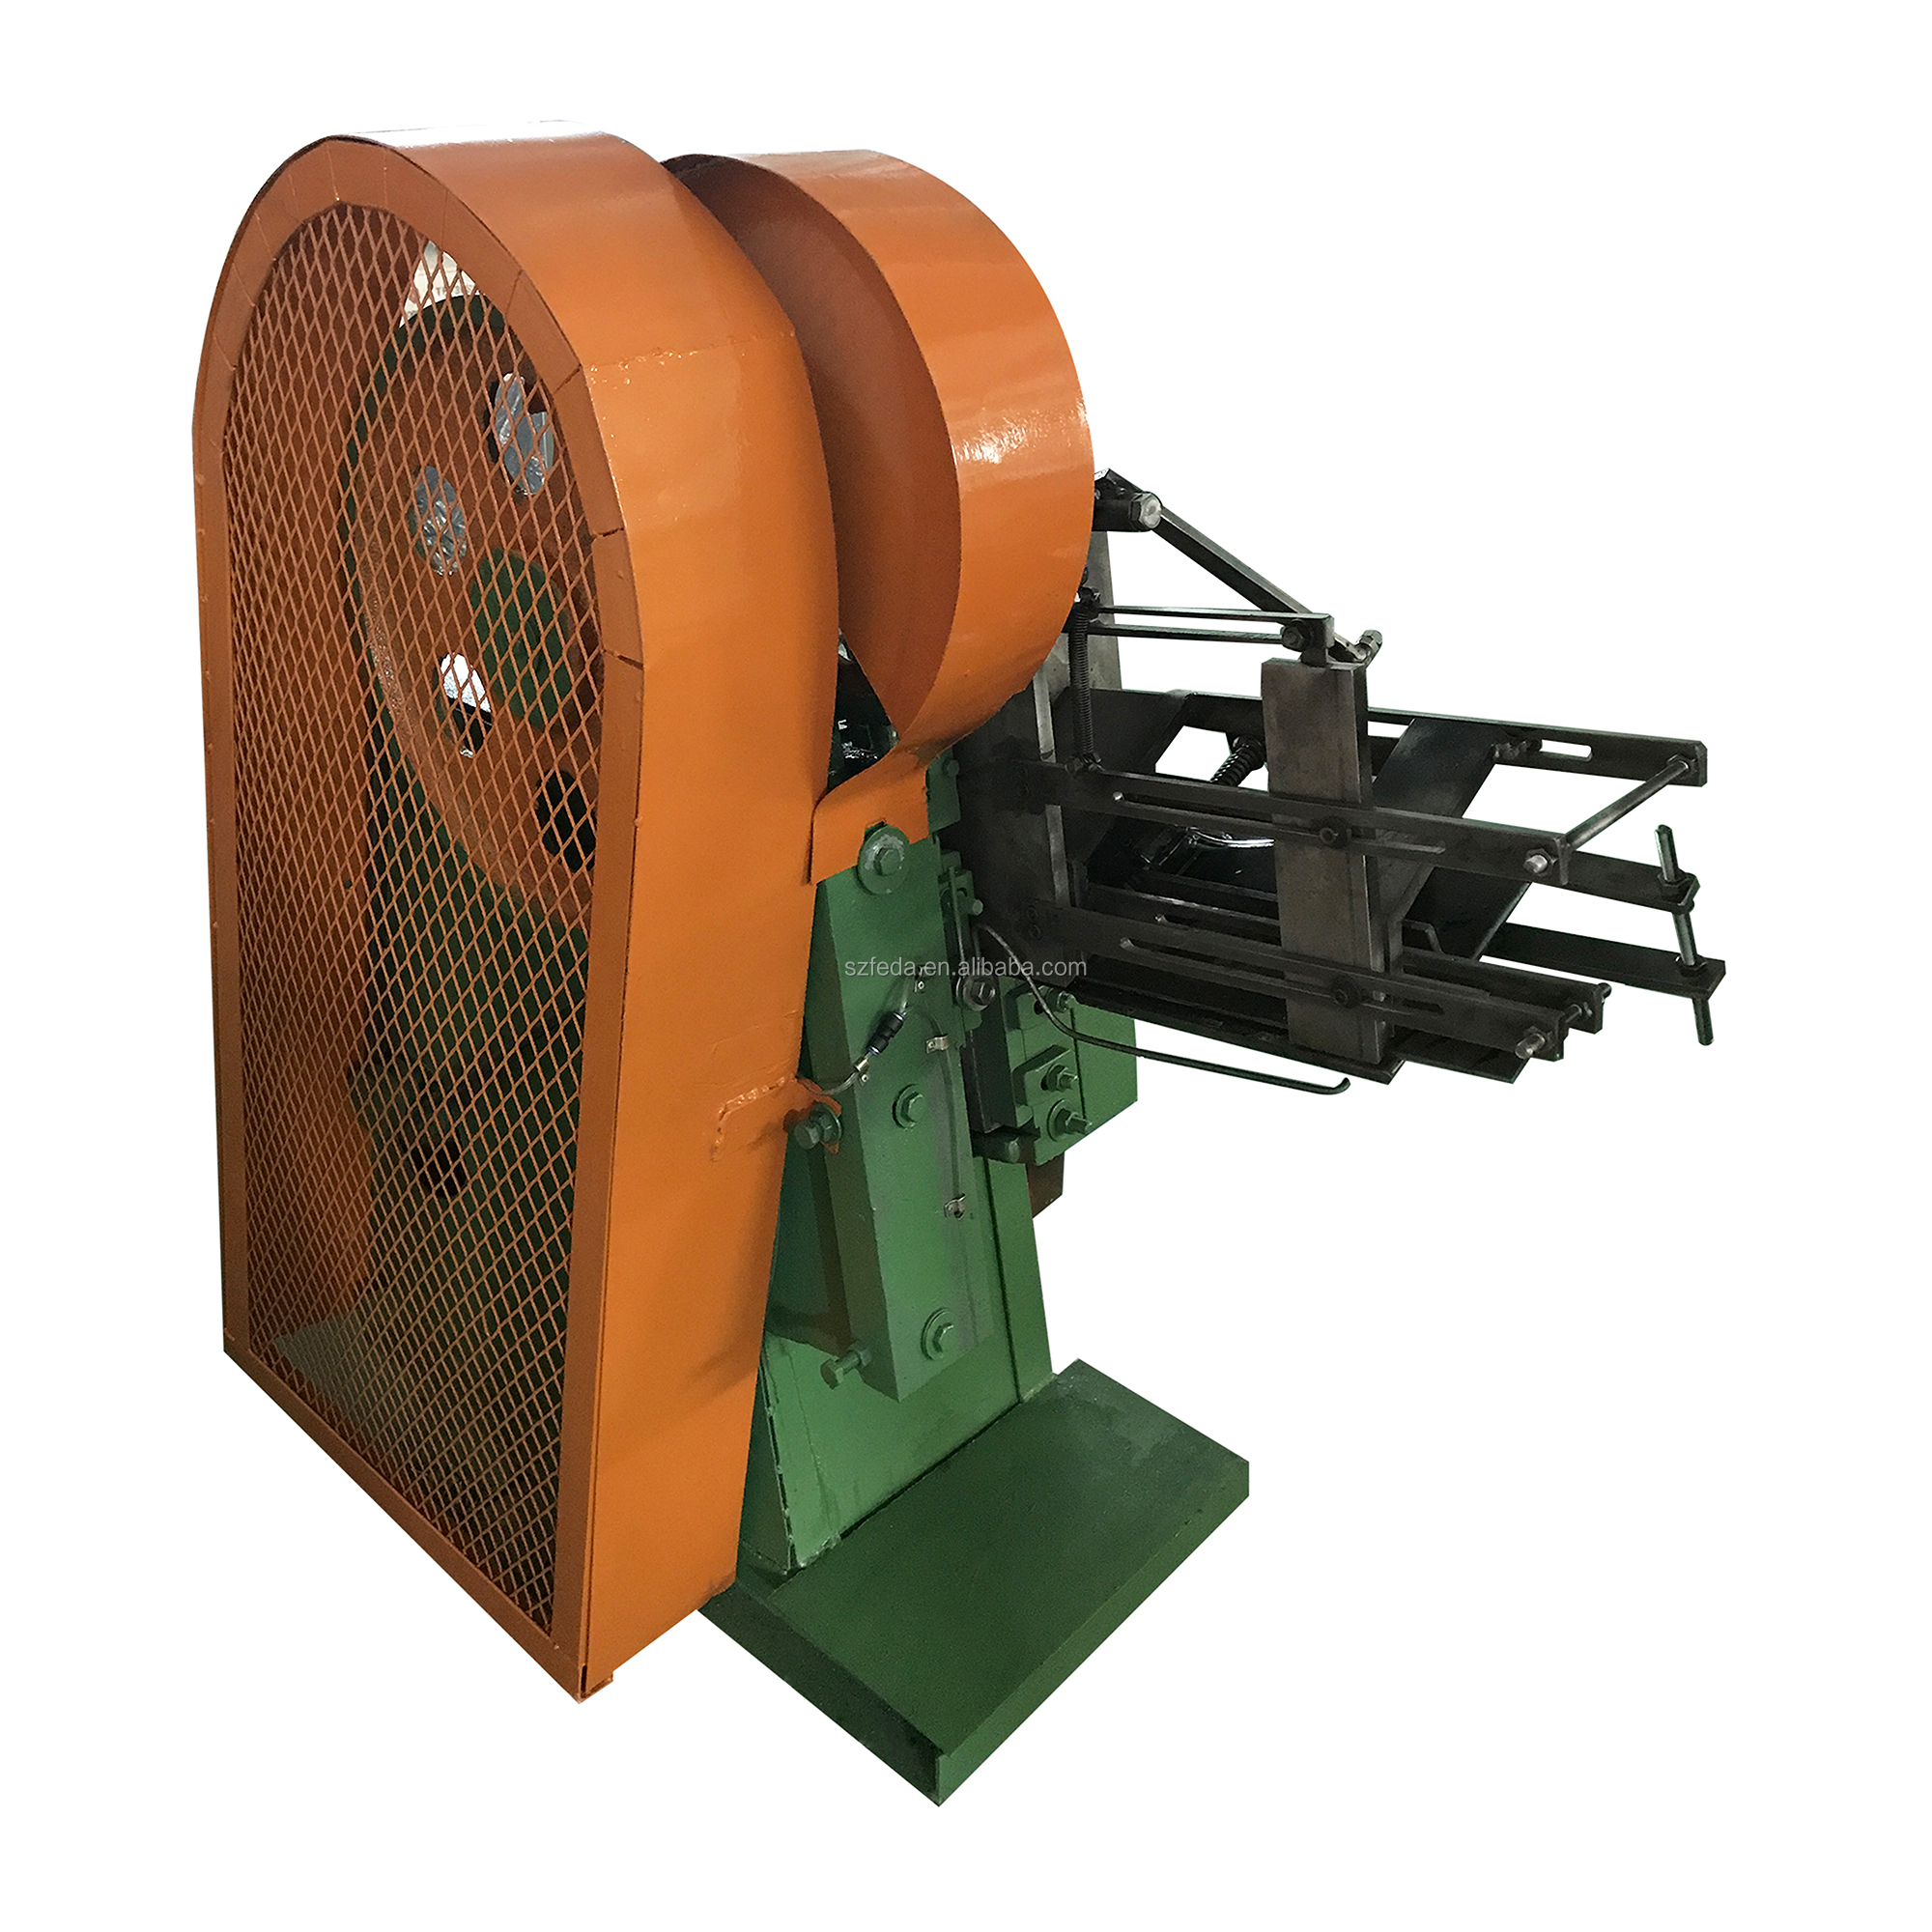 High speed vertical thread rolling machine vertical flat dies thread making machine